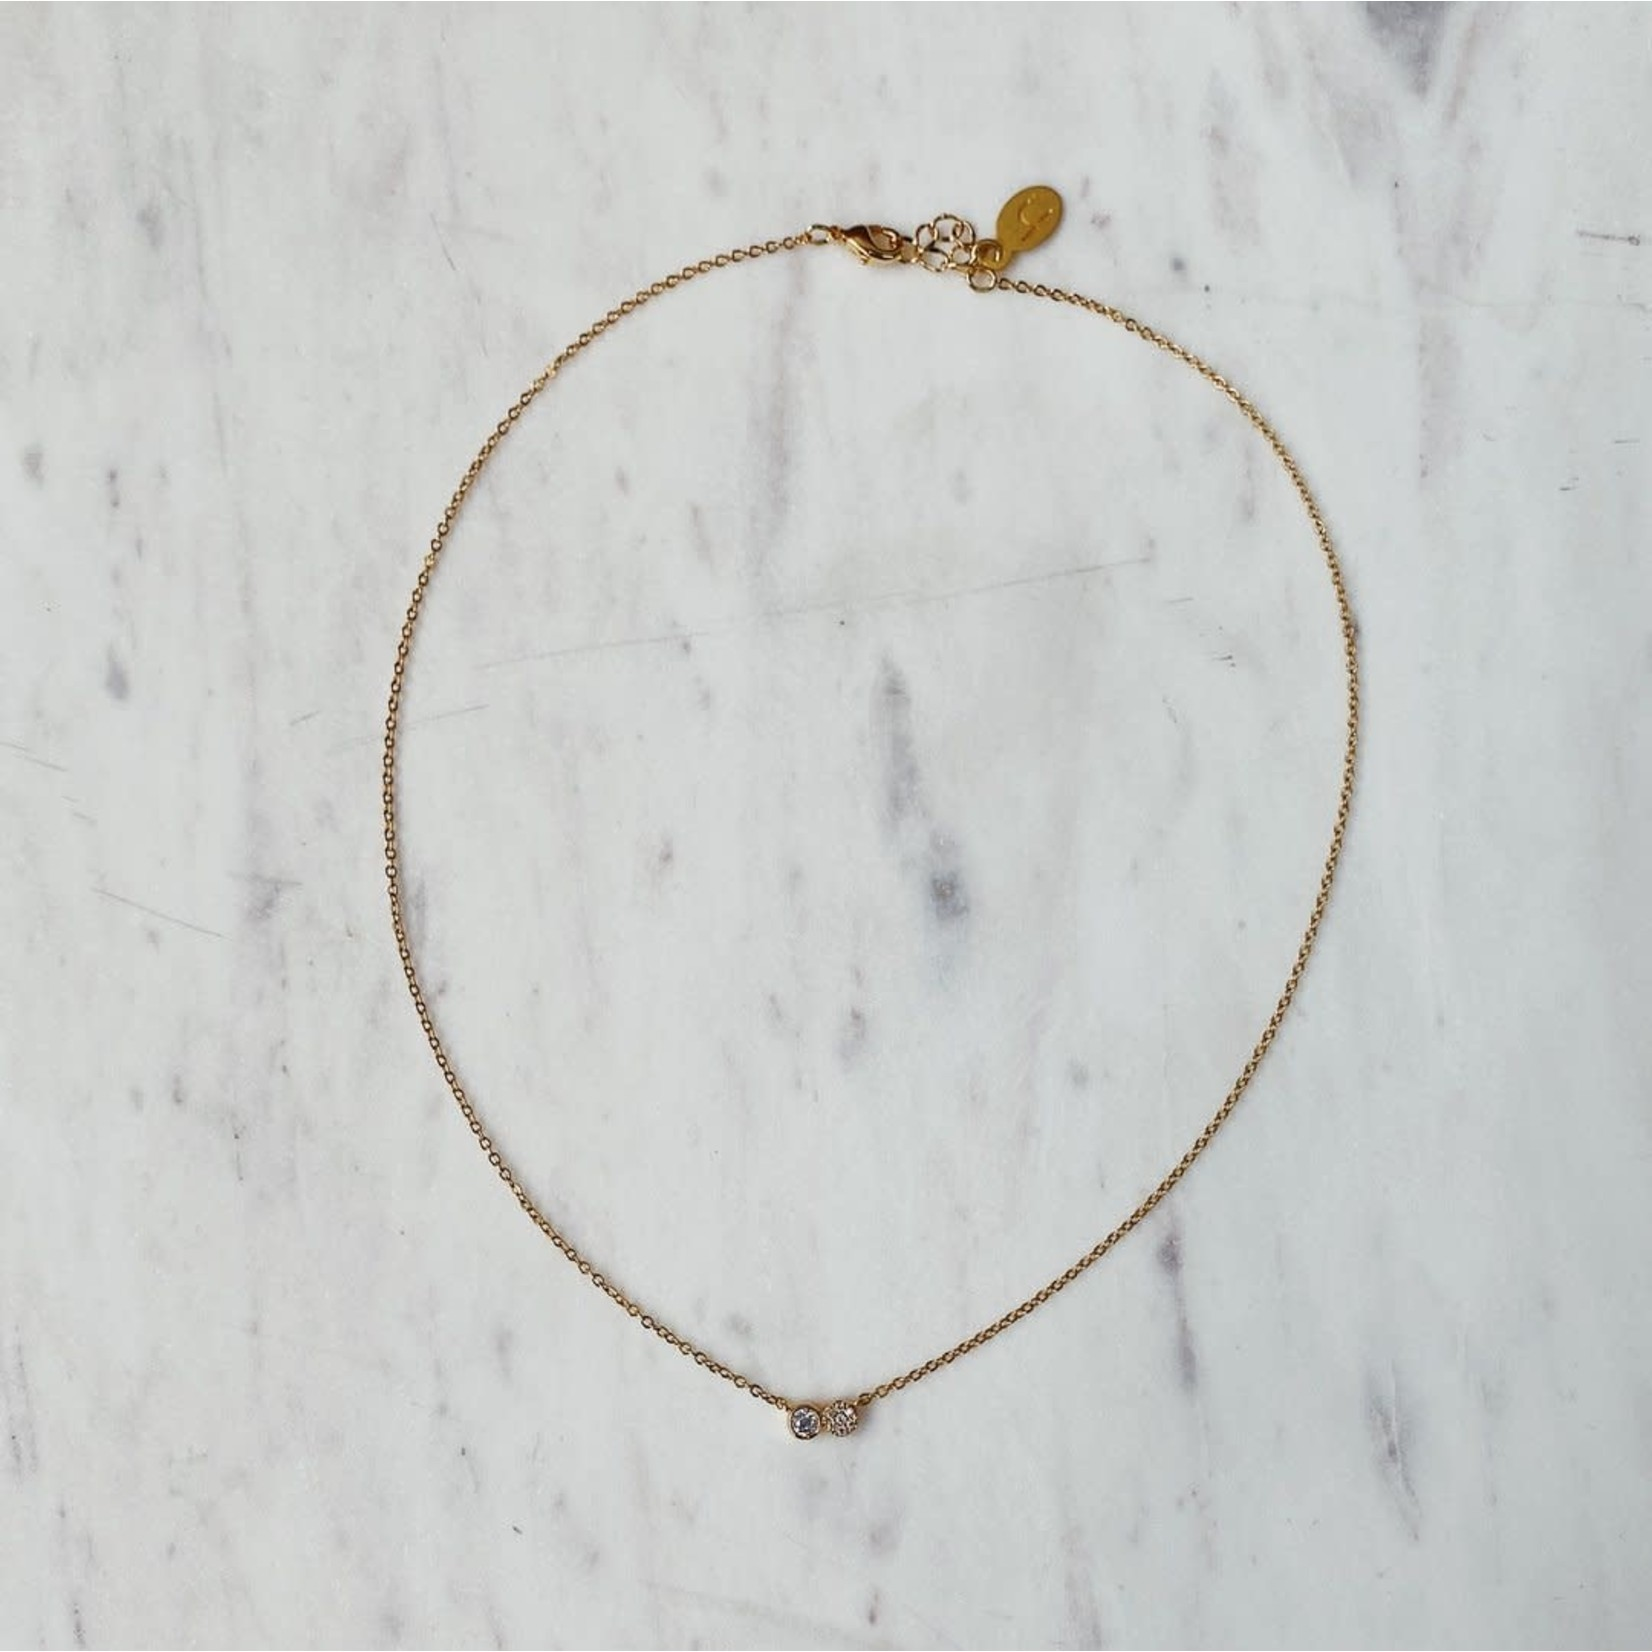 Horace Jewelry Horace collier COLZO